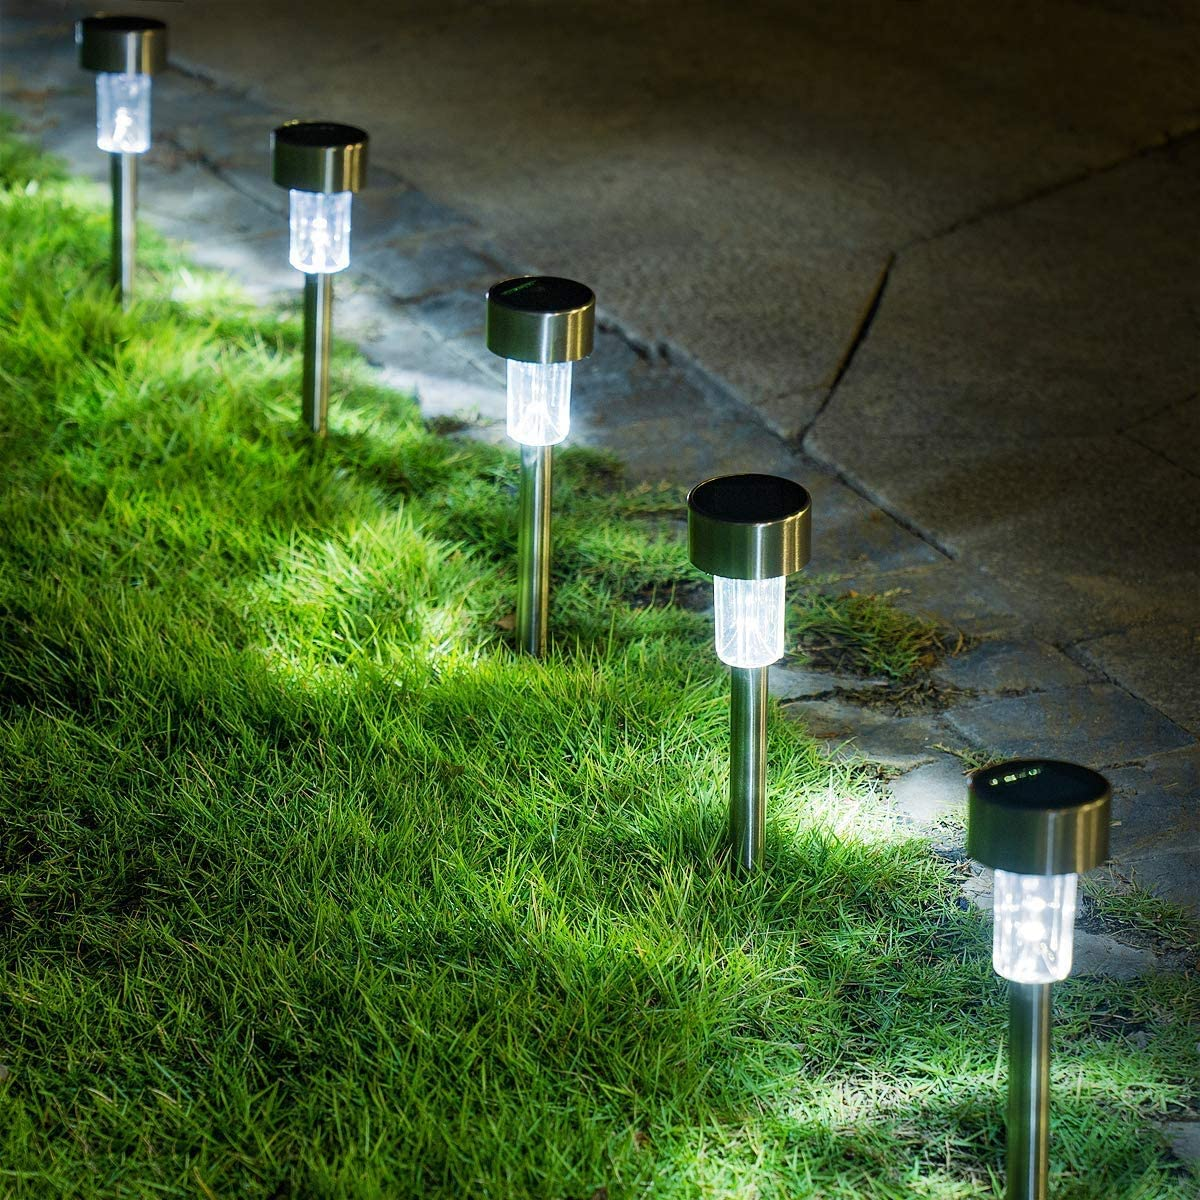 Which one is more suitable for household solar lights?